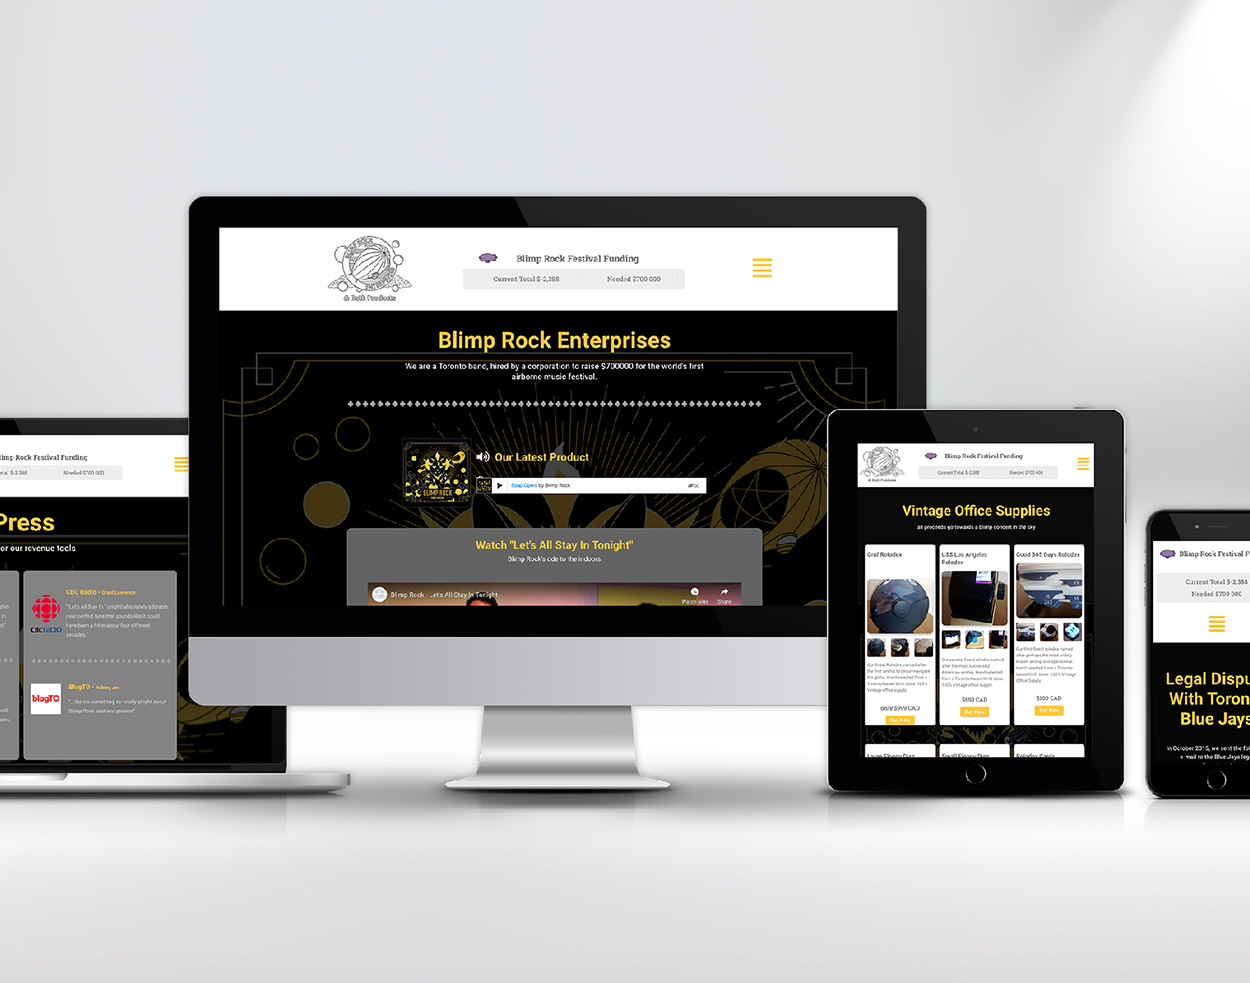 Portfolio website design - Blimp Rock Enterprises responsive design cover